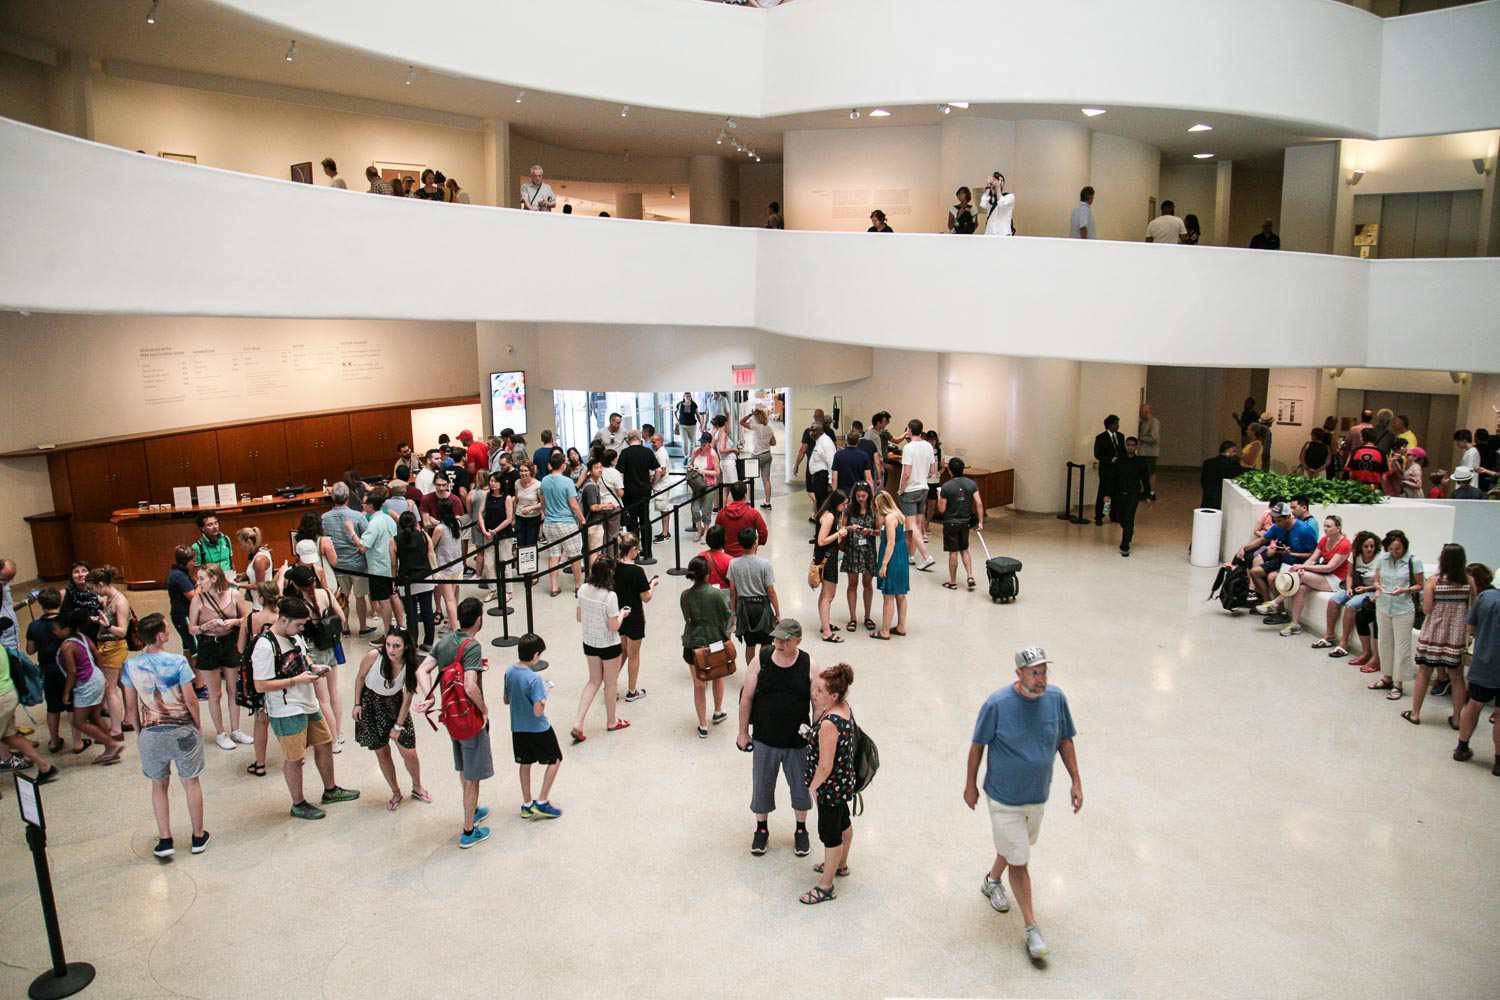 The ticket lines in the lobby at the Guggenheim museum